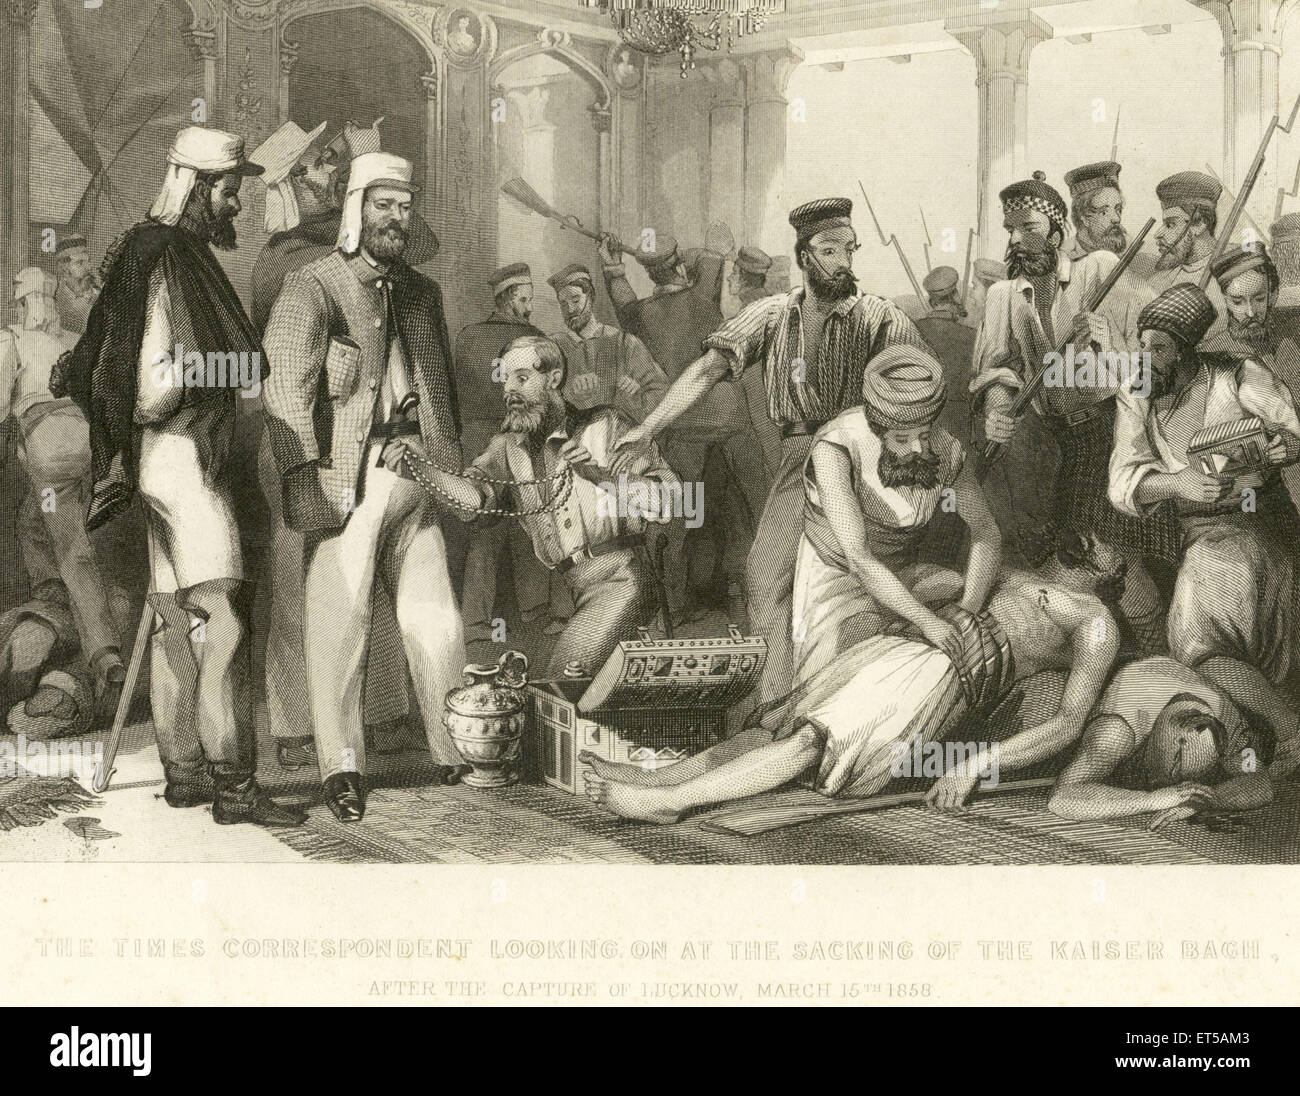 Lithographs The Times Correspondent Looking sacking of the Kaiser Bach capture of Lucknow 15th March 1858 ; Uttar - Stock Image